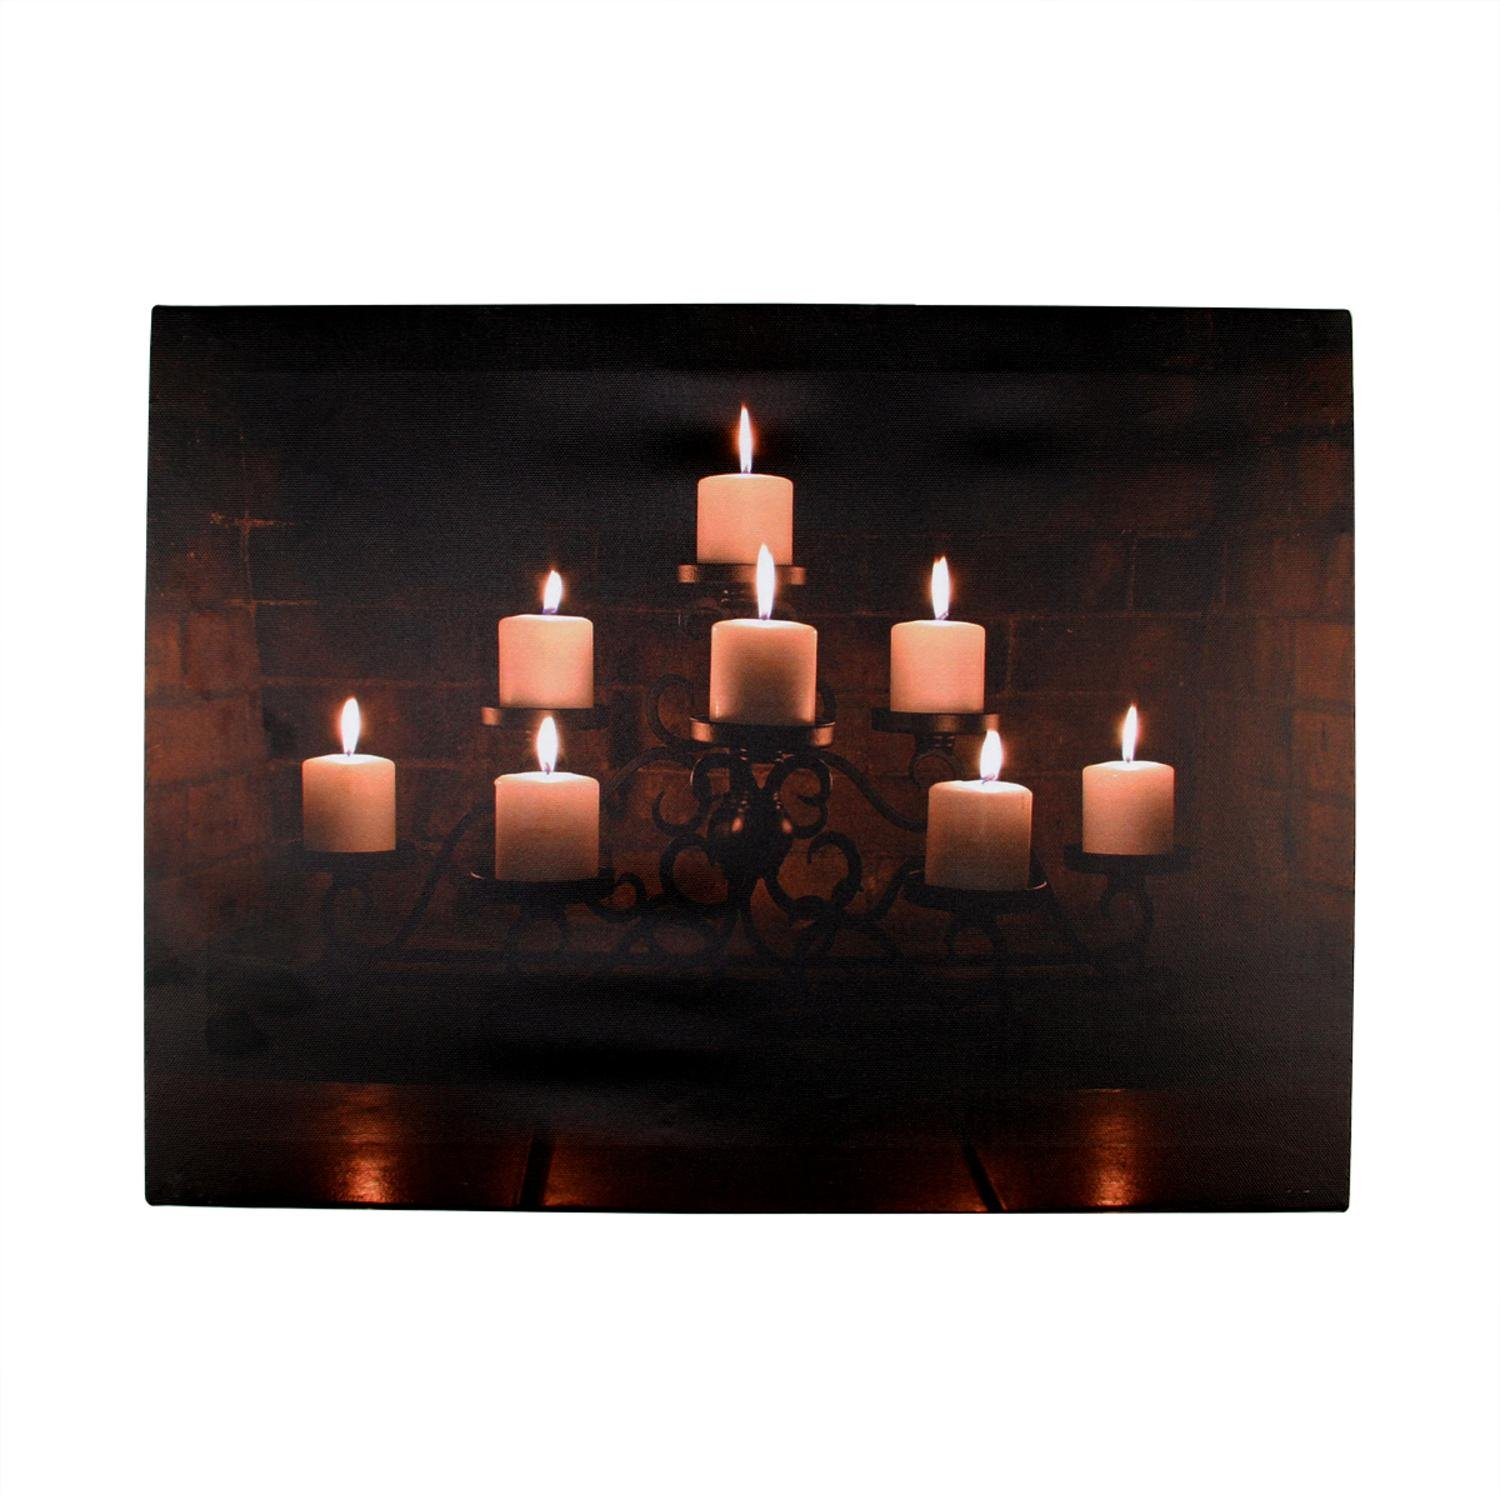 Northlight LED Lighted Flickering Rustic Lodge Fireplace Candles Canvas Wall Art Decor, 11.75'' X 15.75'', Orange